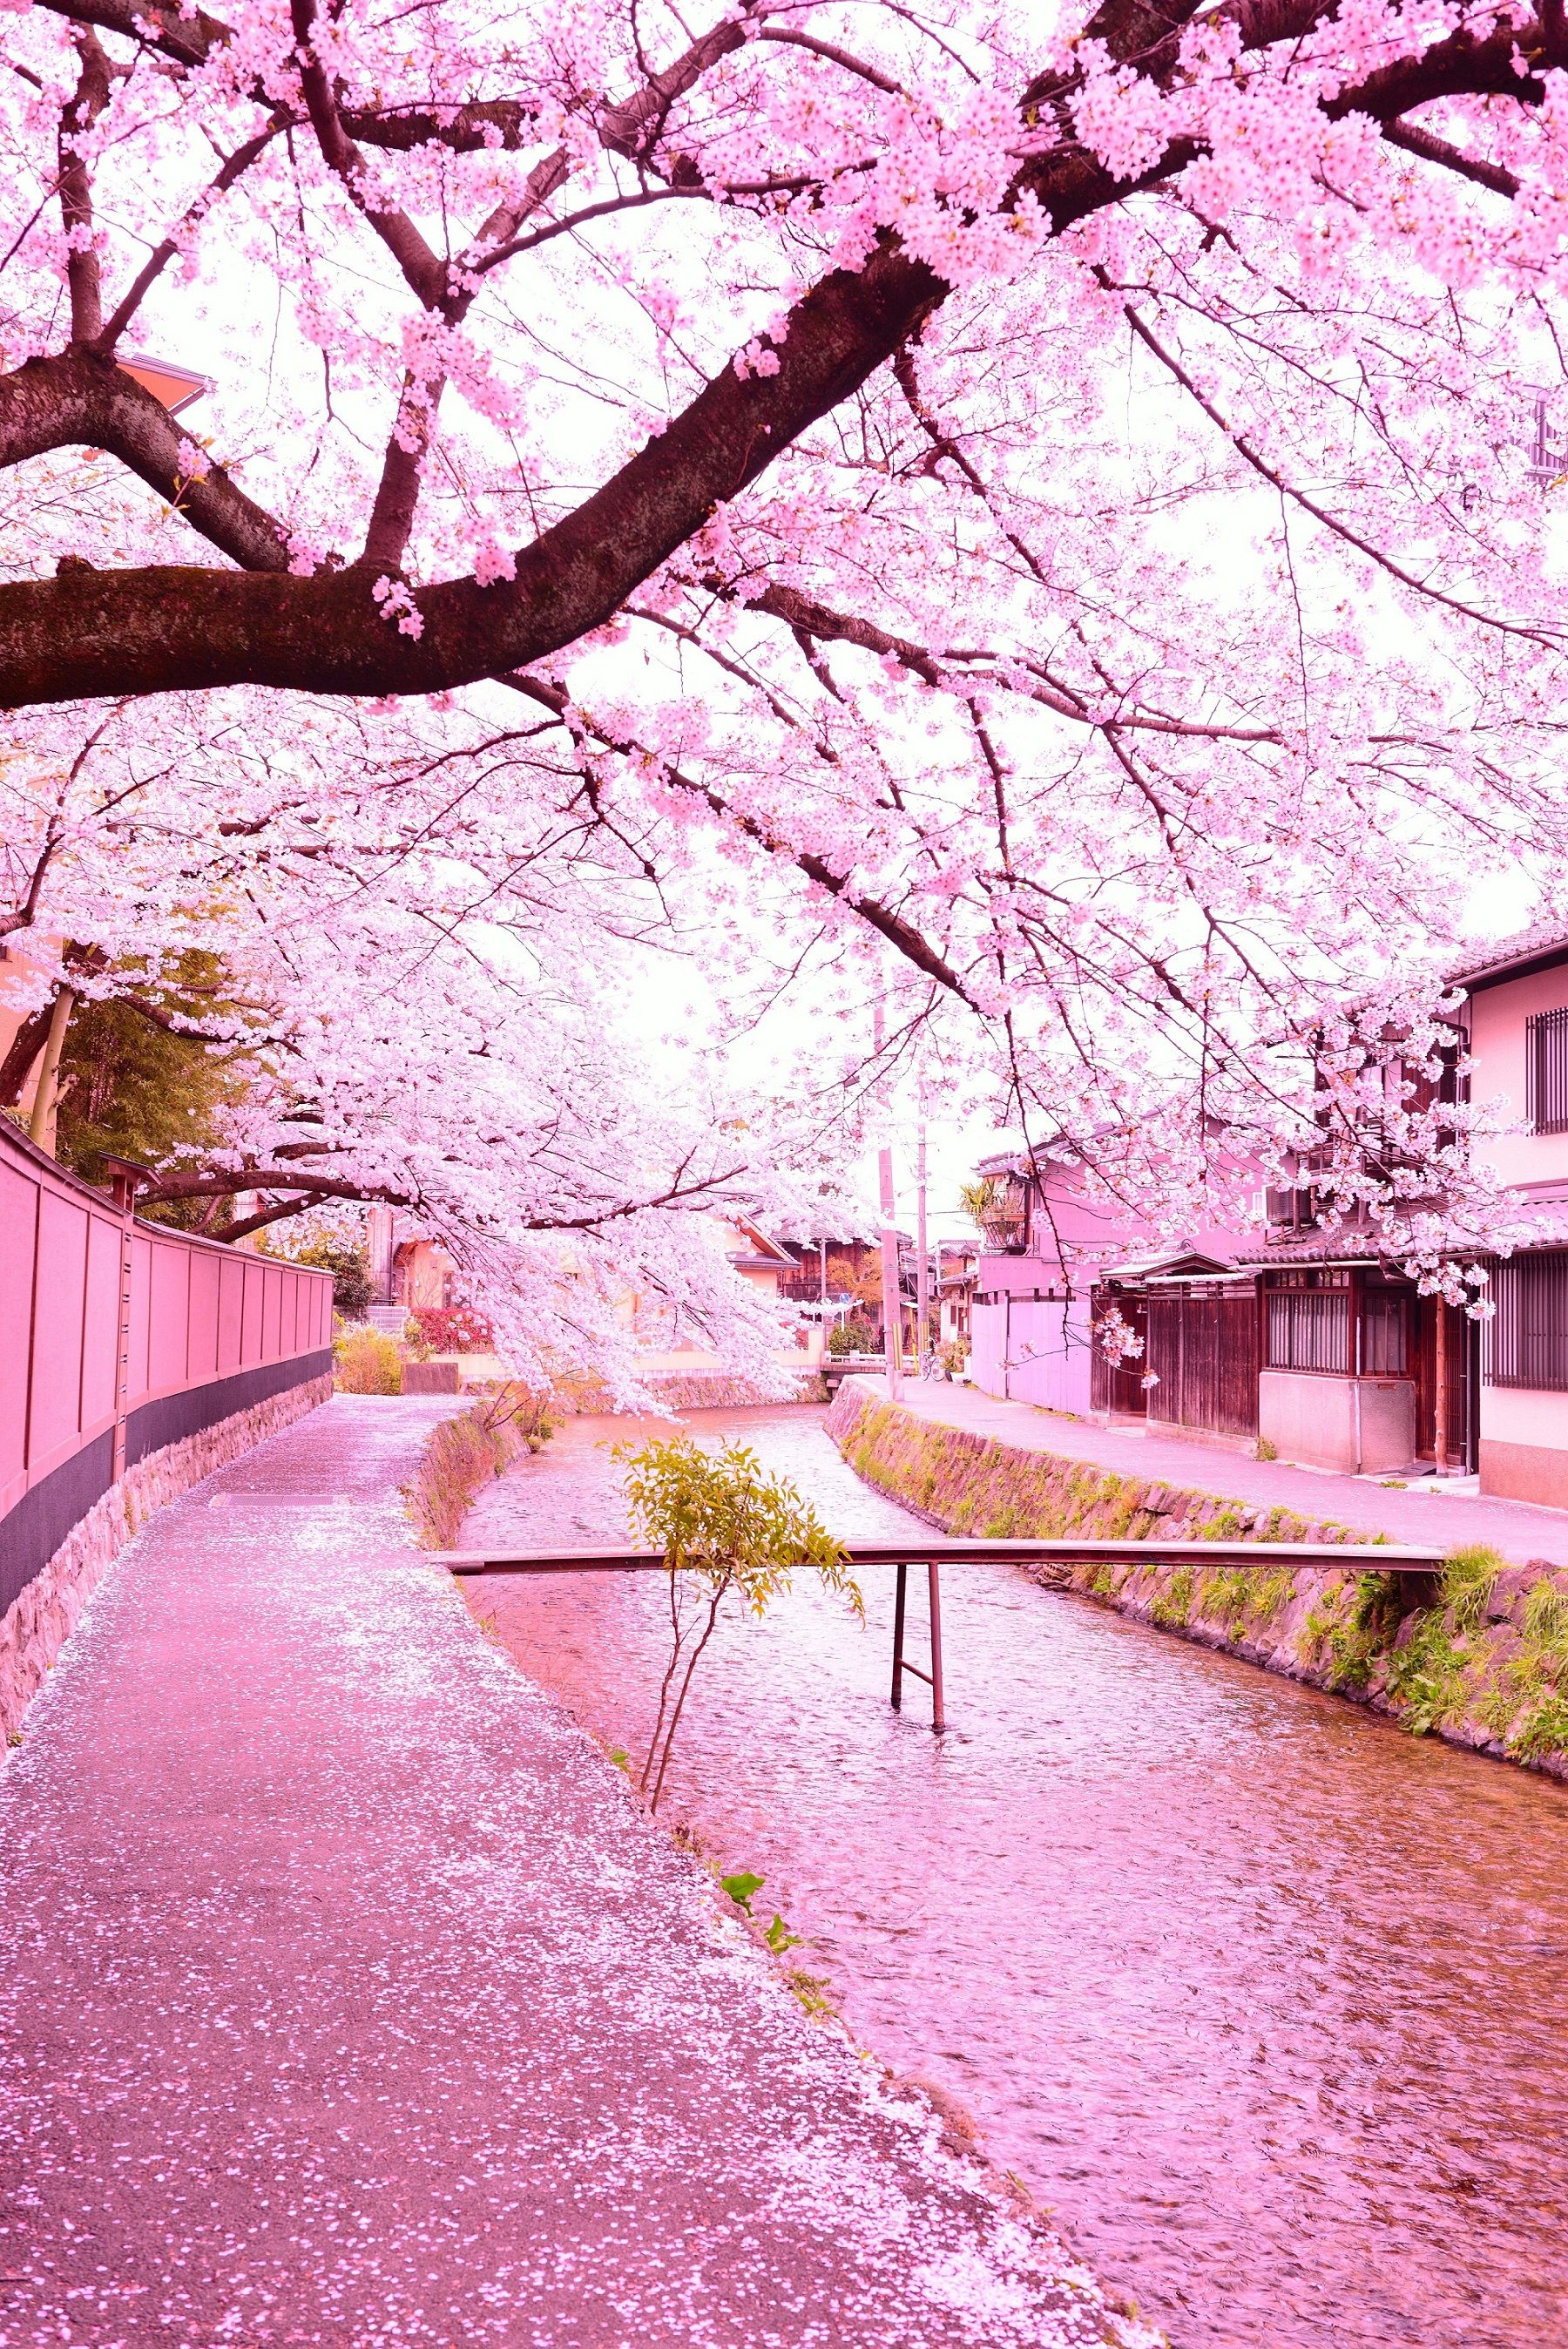 Pink Japan Cherry Trees In Full Blossom In A Japanese Street And